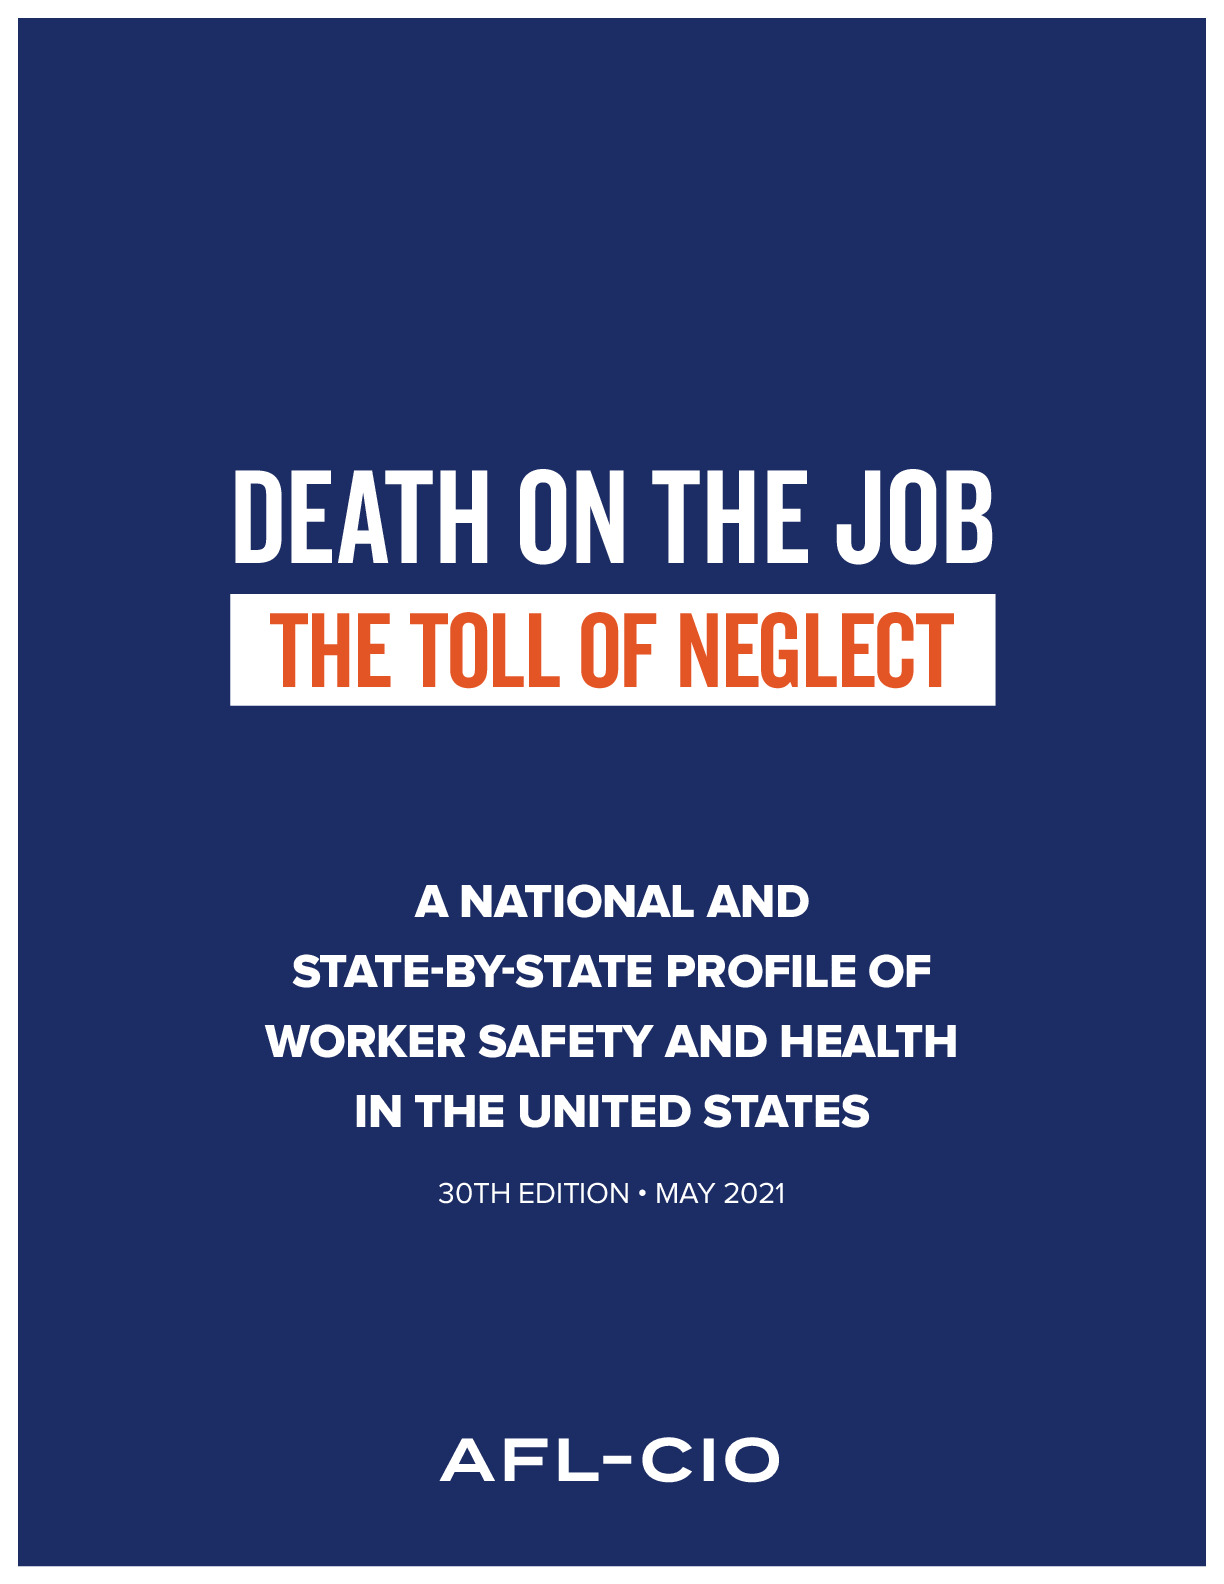 Death on the Job: The Toll of Neglect, 2021 | AFL-CIO